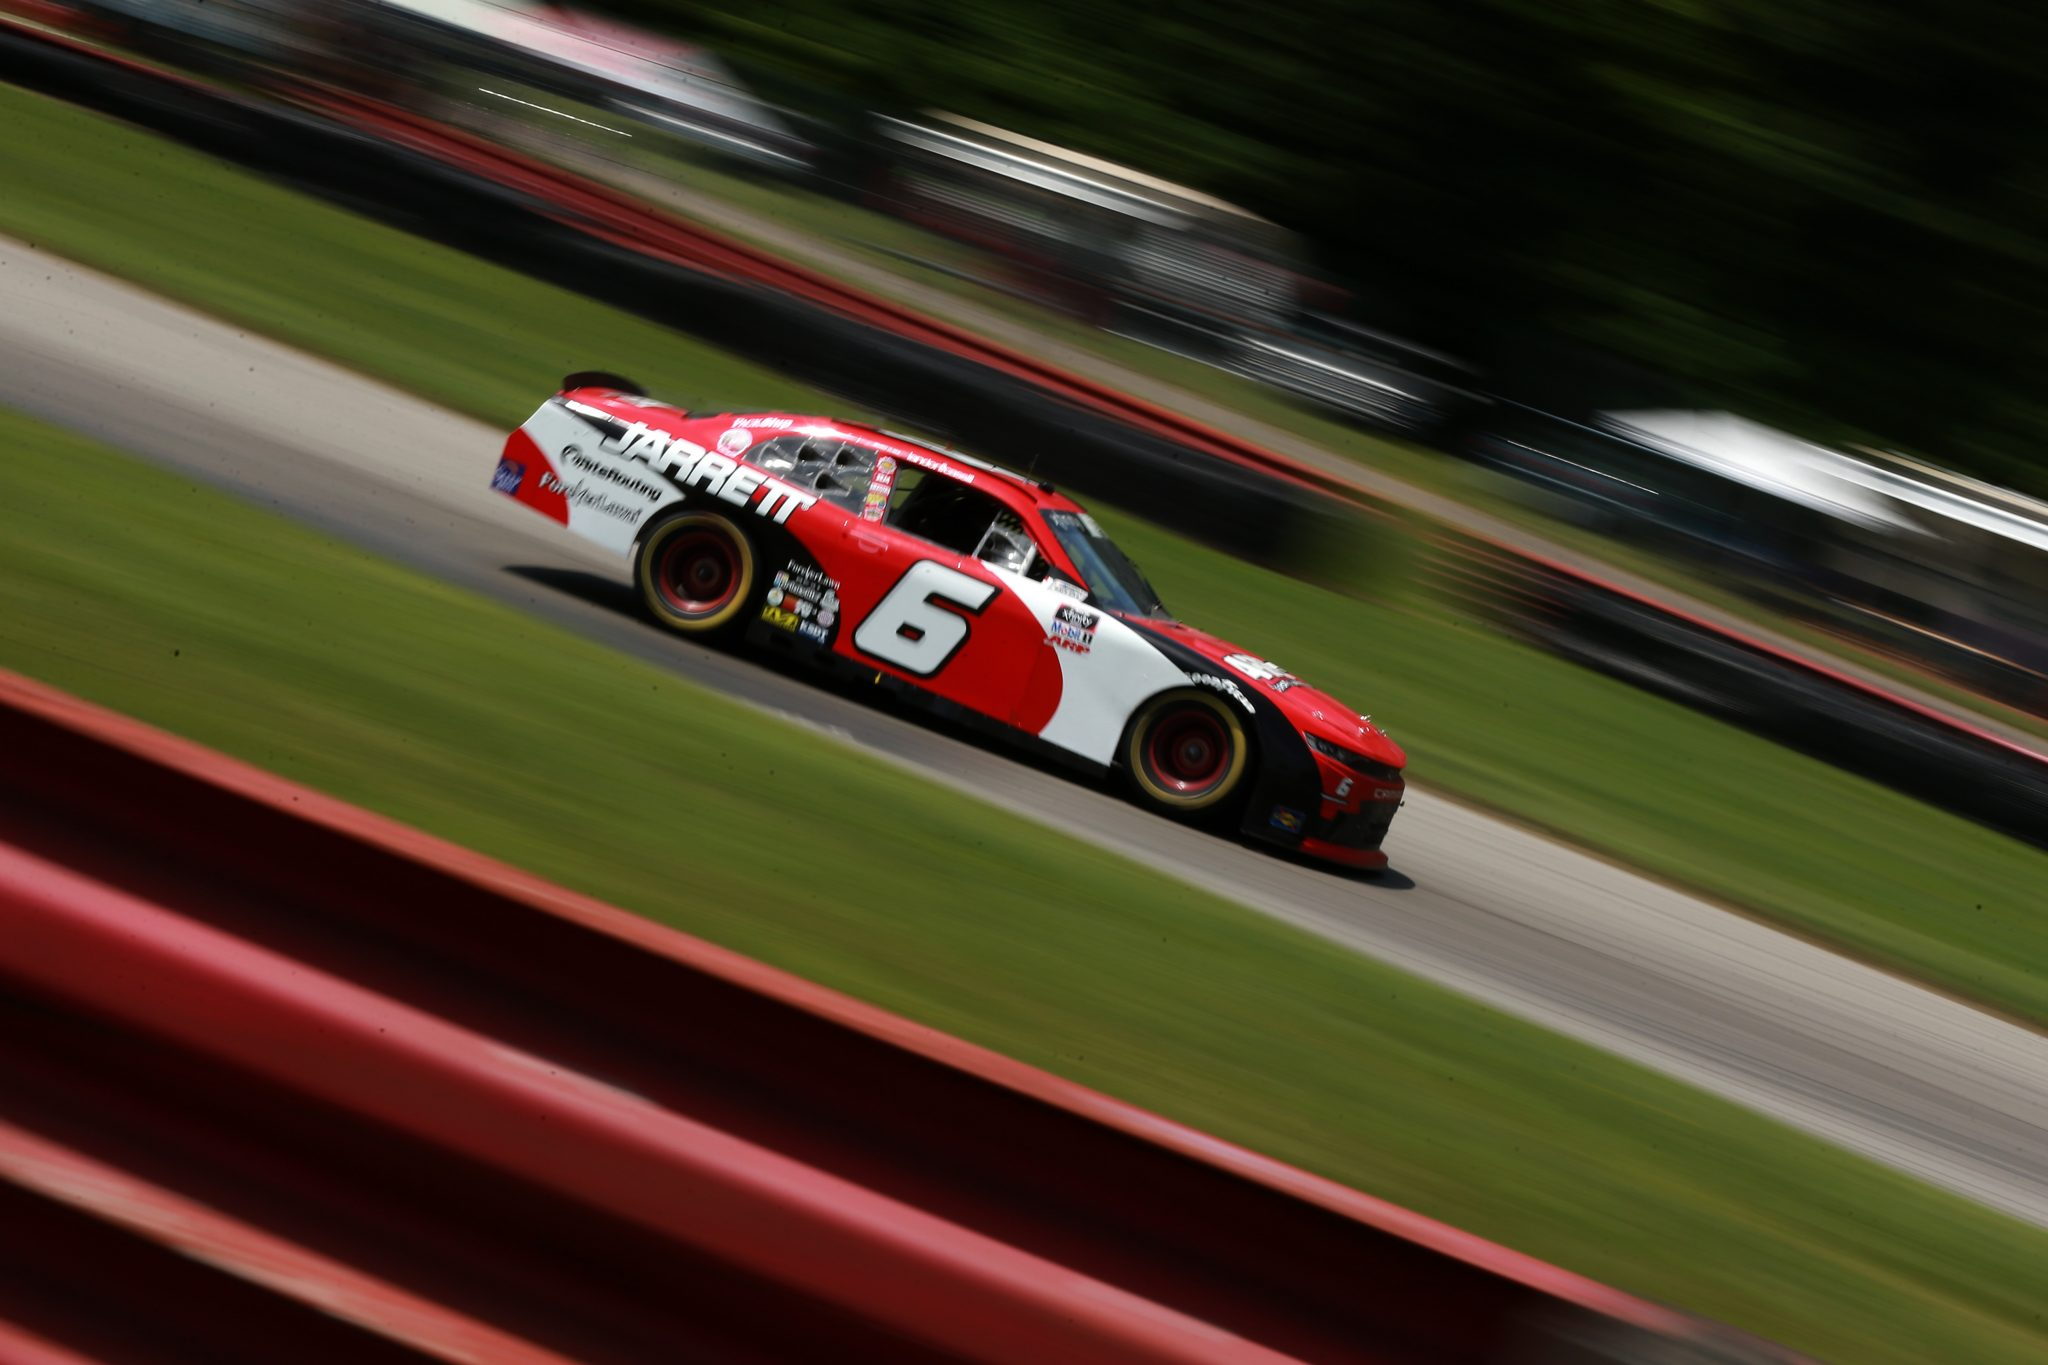 LEXINGTON, OHIO - JUNE 05: Landon Cassill, driver of the #6 Jarrett Logistics Chevrolet, drives during the NASCAR Xfinity Series B&L Transport 170 at Mid-Ohio Sports Car Course on June 05, 2021 in Lexington, Ohio. (Photo by Sean Gardner/Getty Images) | Getty Images